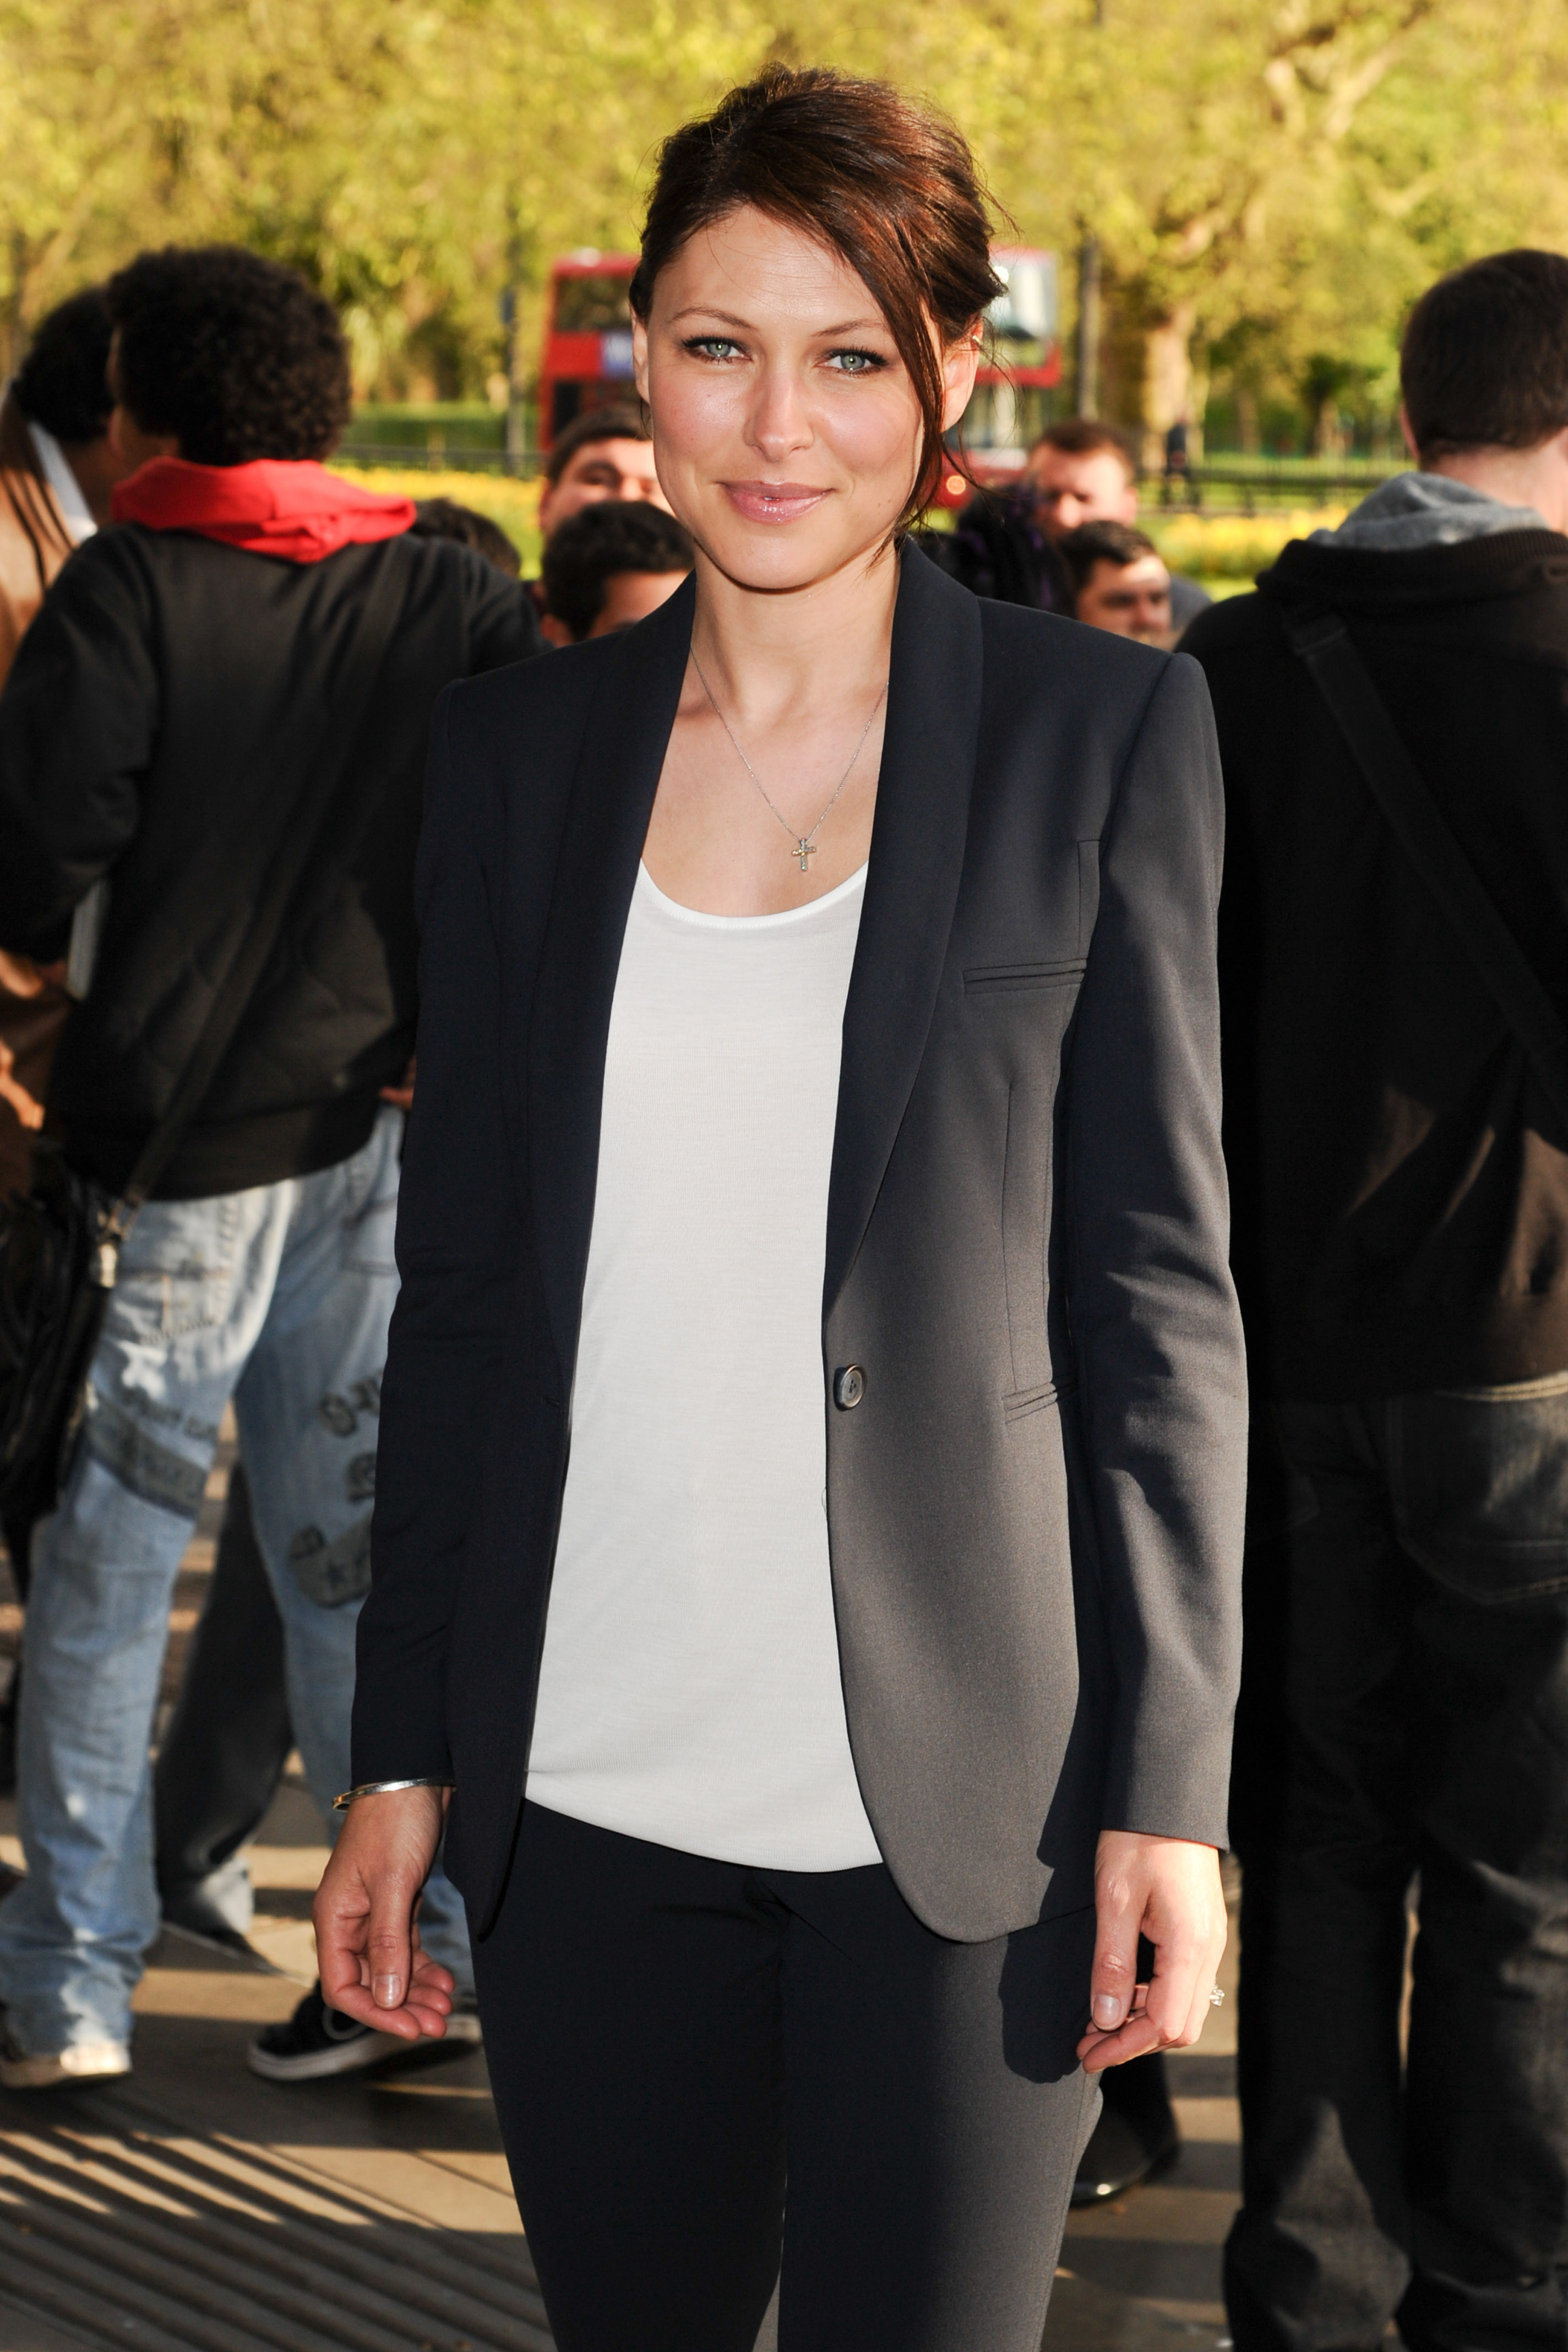 Emma Willis' net worth